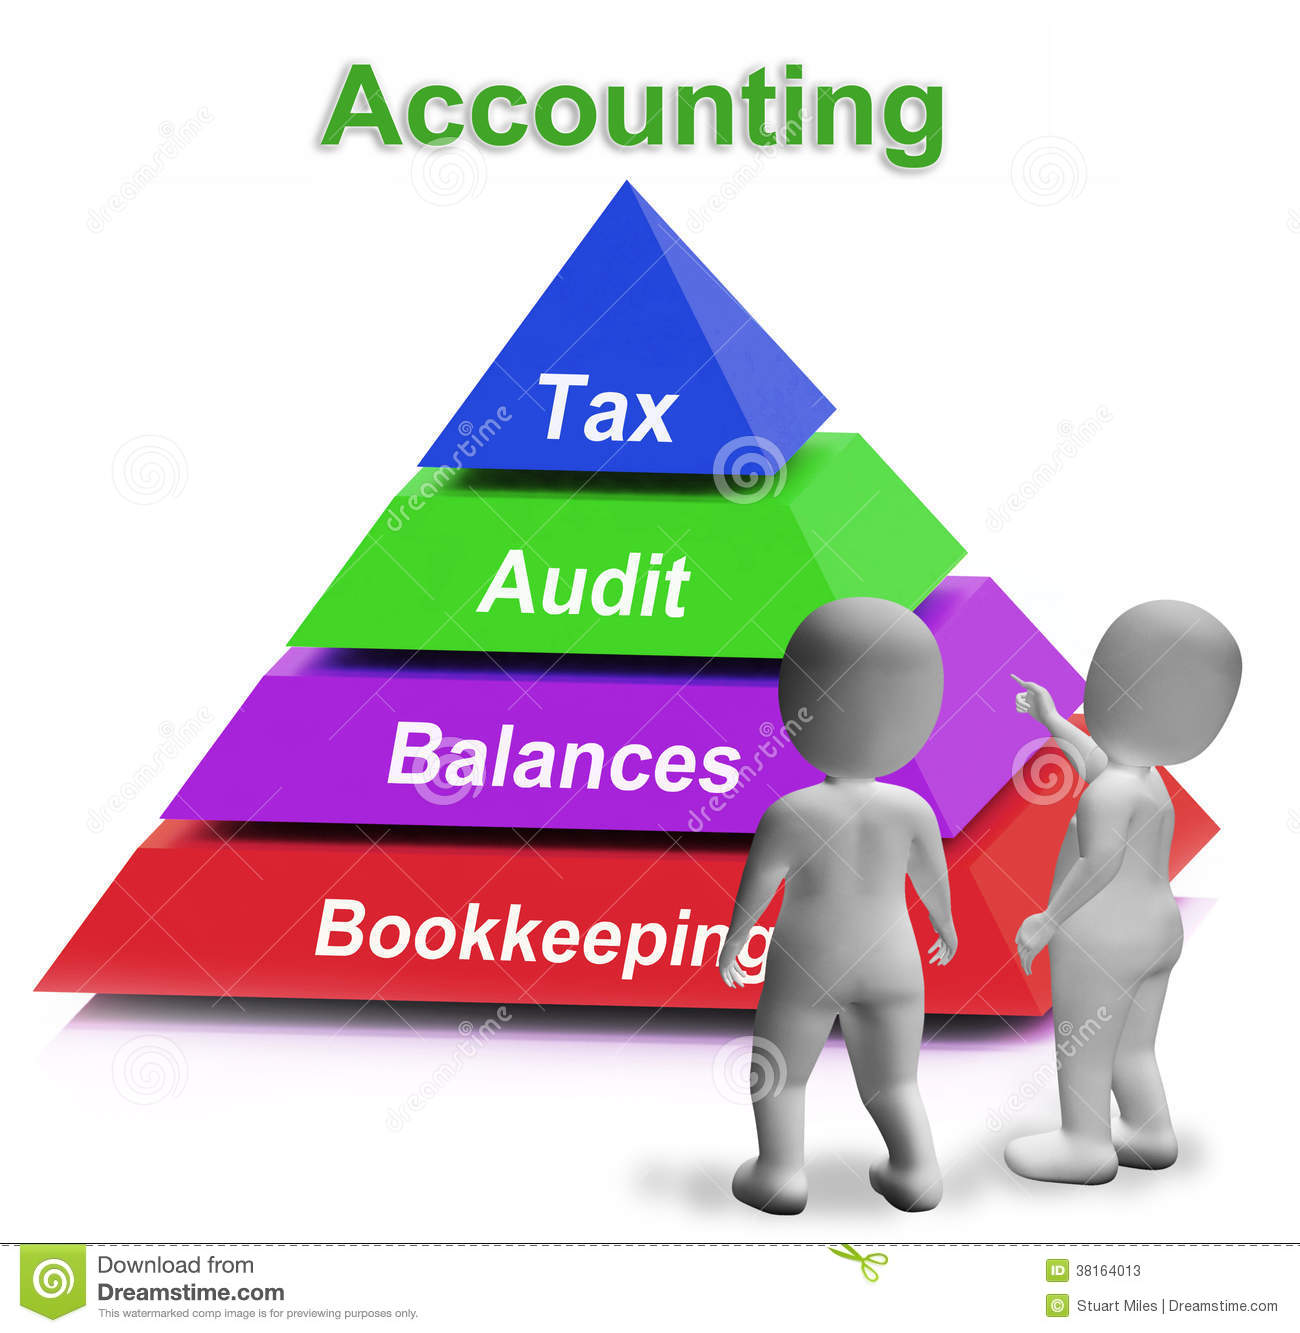 Accounting Pyramid Means Paying Taxes Auditing Stock Photos Image Female Accountant Clipart